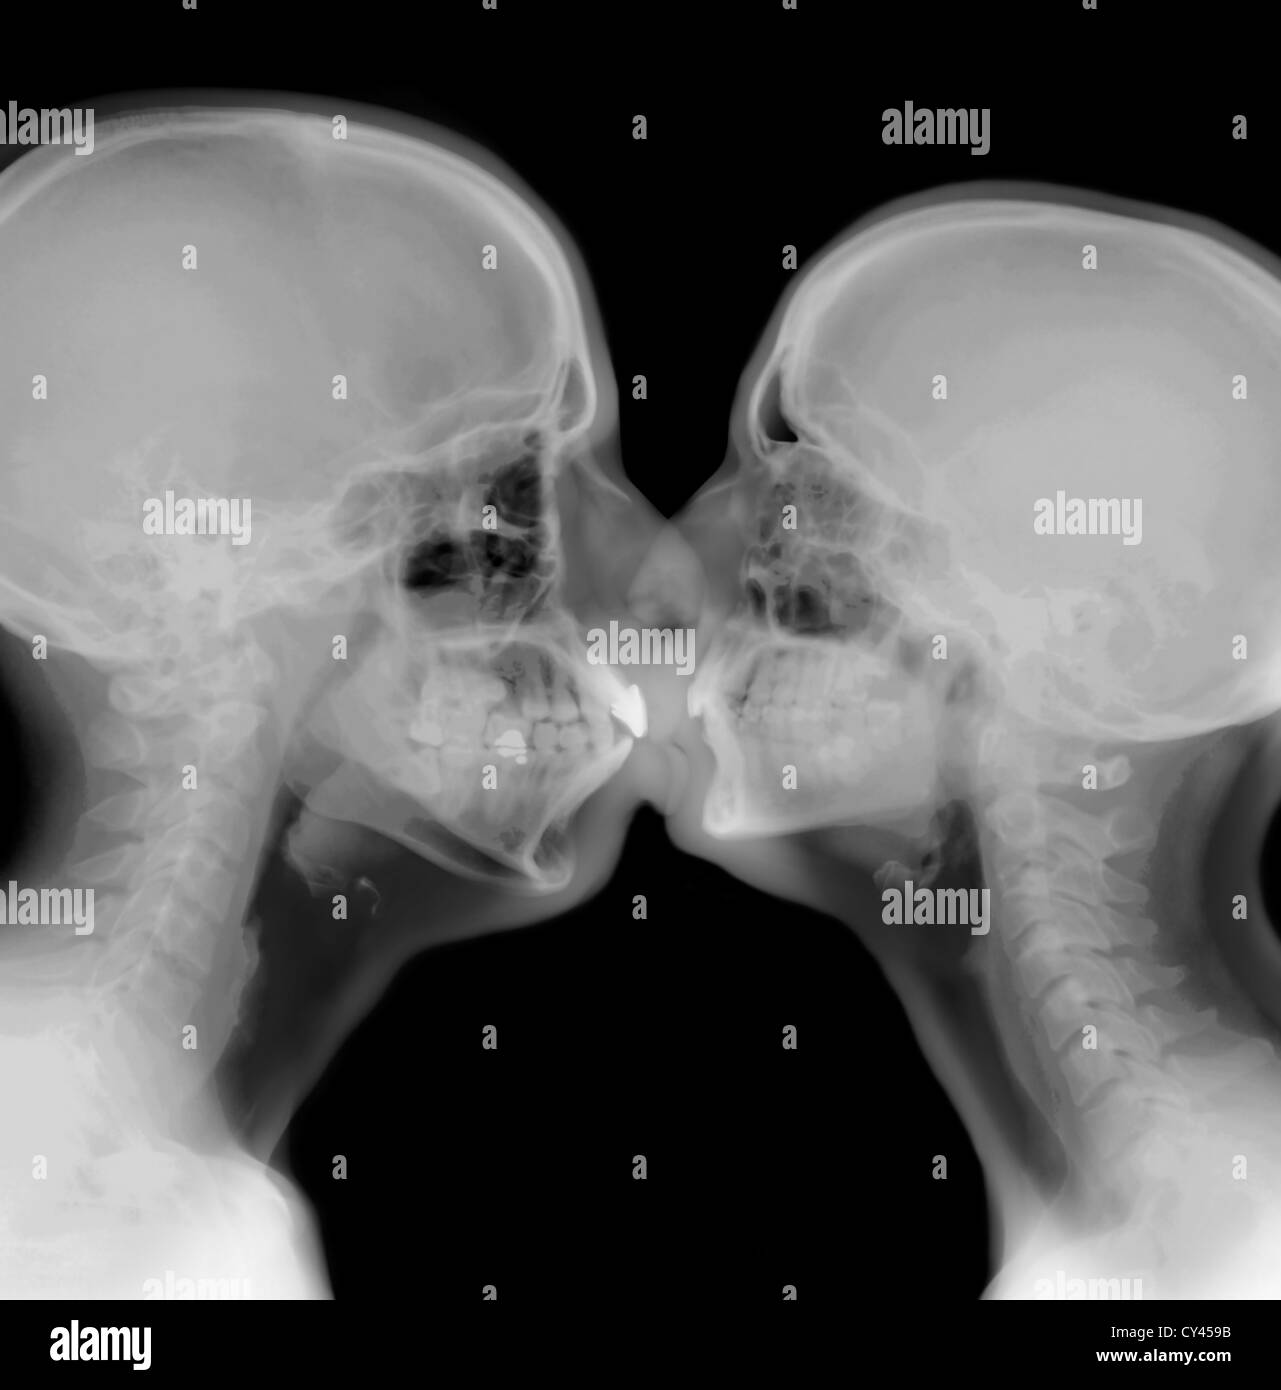 X-ray of a couple kissing - Stock Image